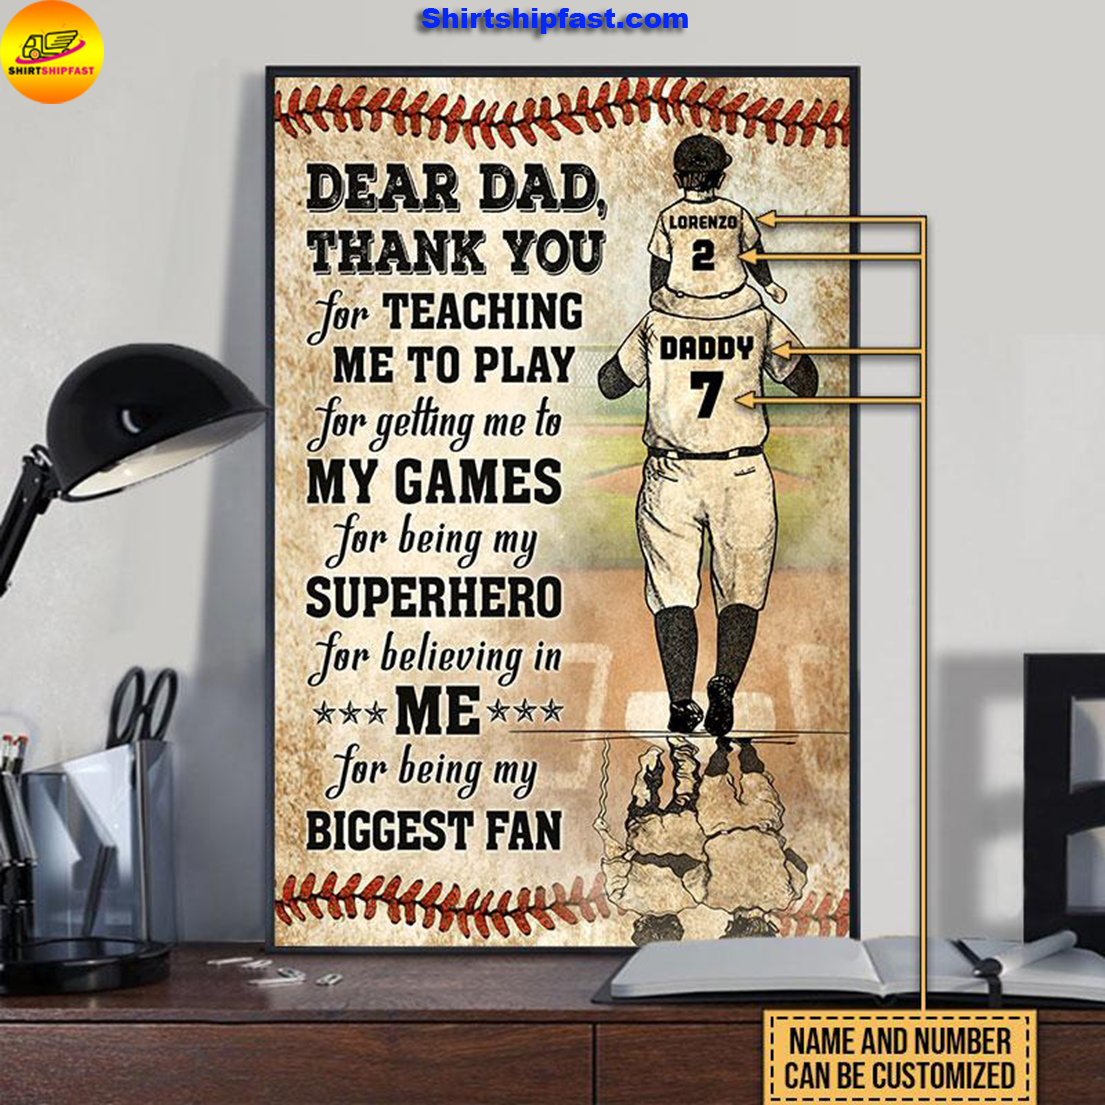 Personalized baseball dad and son thank you customized poster - Picture 1